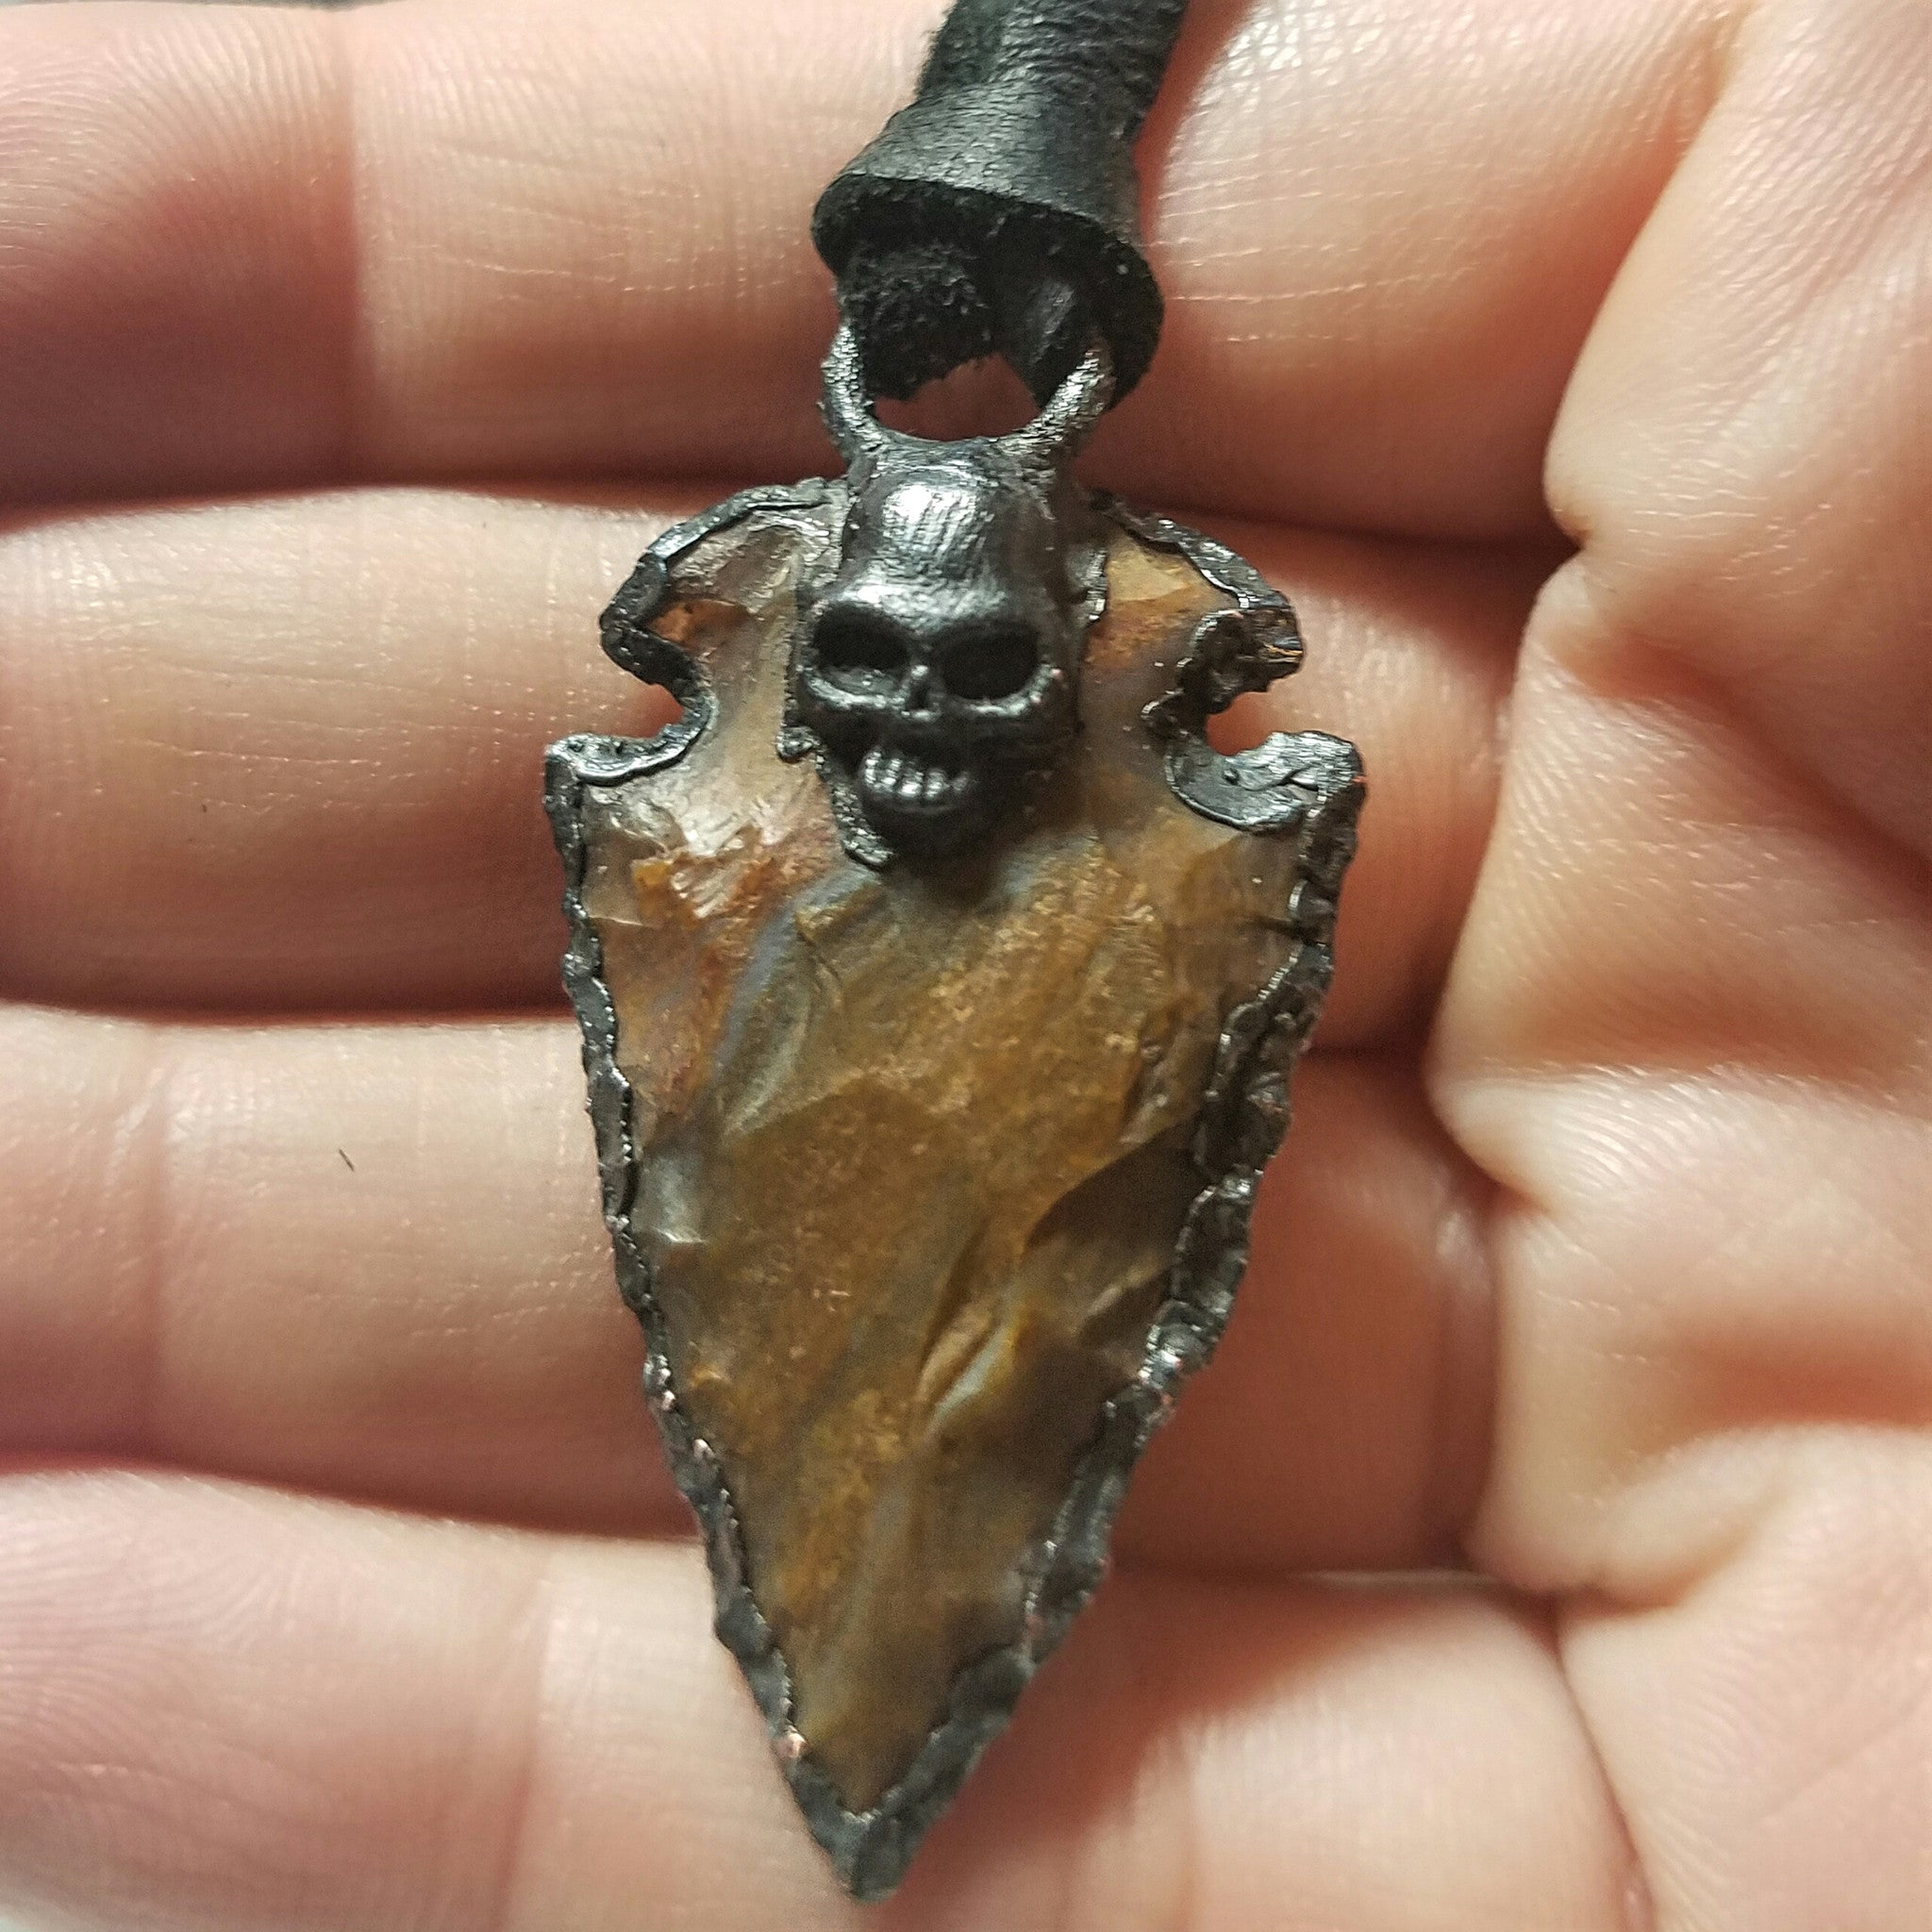 Electroformed Agate Arrowhead Necklace #7 - Reversible with Skull